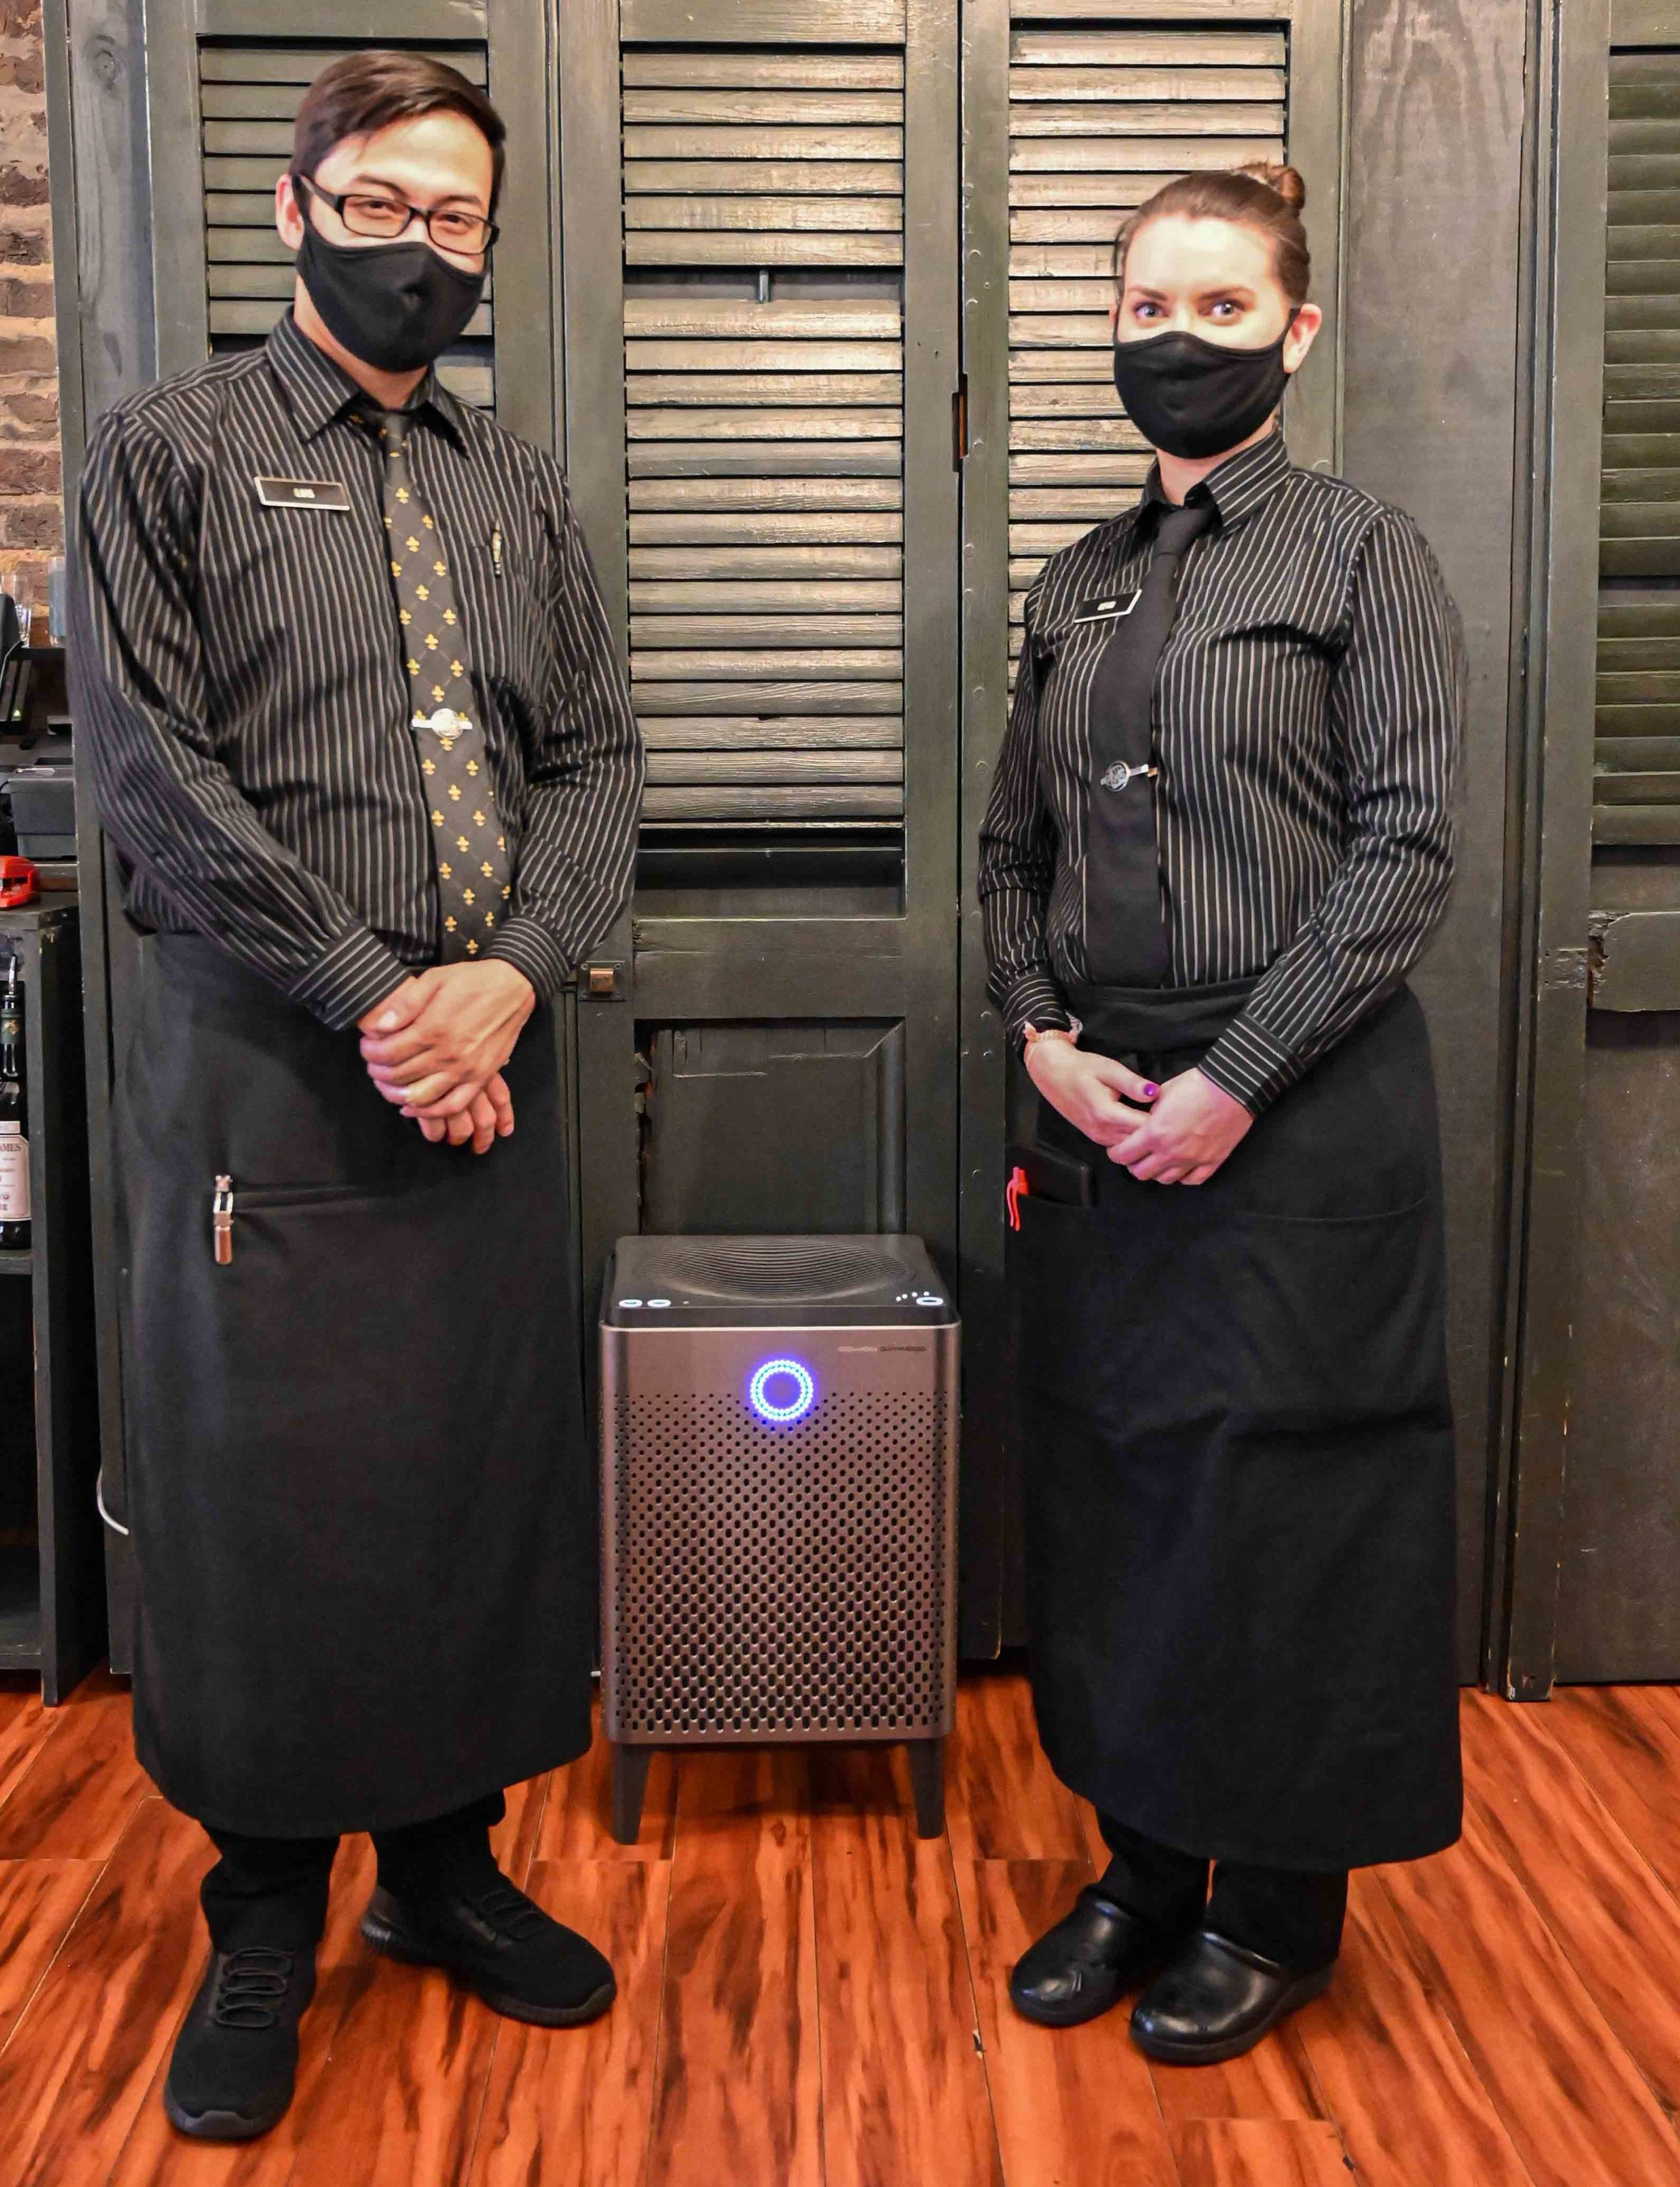 Servers and Air Purifier